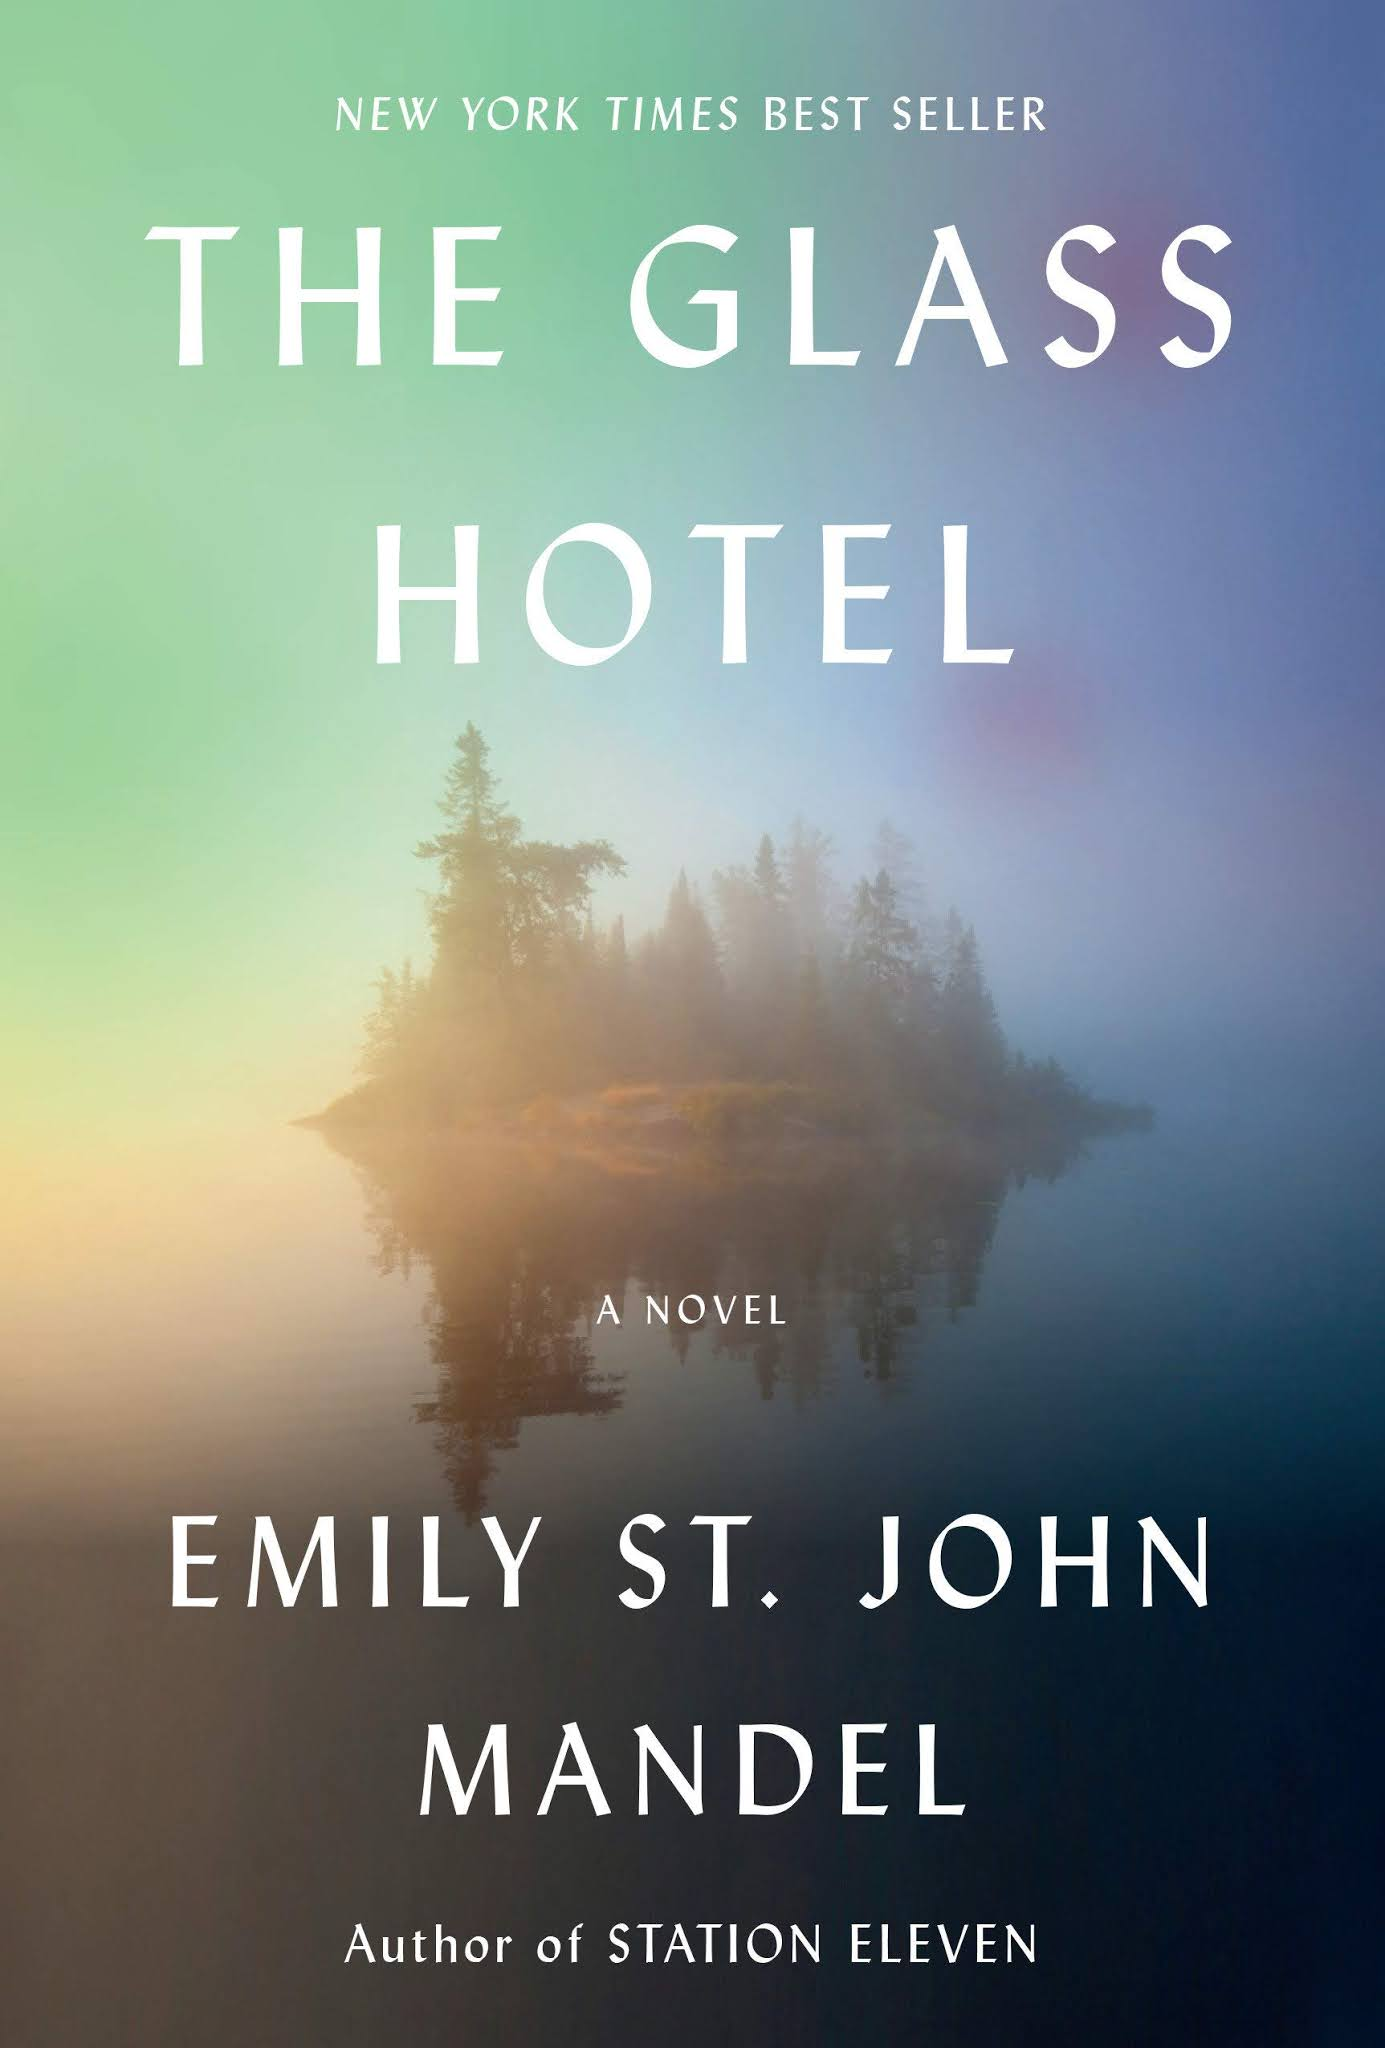 Book cover for The Glass Hotel by Emily St John Mandel The Glass Hotel in the South Manchester, Chorlton, Cheadle, Fallowfield, Burnage, Levenshulme, Heaton Moor, Heaton Mersey, Heaton Norris, Heaton Chapel, Northenden, and Didsbury book group